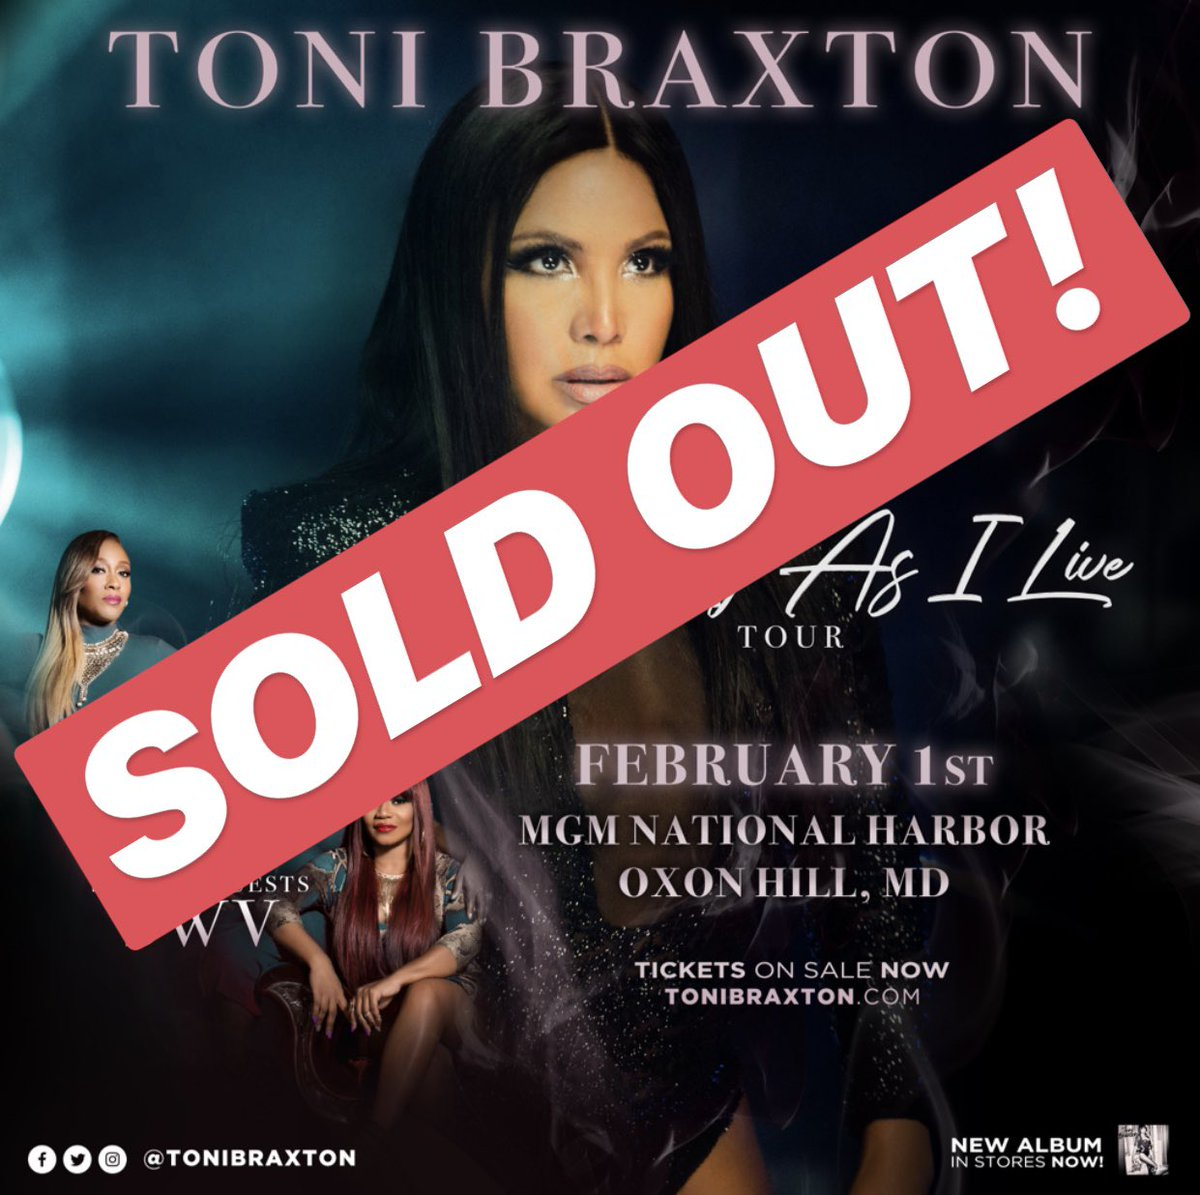 Back to back! Tonight's show at @MGMNatlHarbor is #SOLDOUT! ????????#AsLongAsILiveTour https://t.co/7rg0JLv2RO